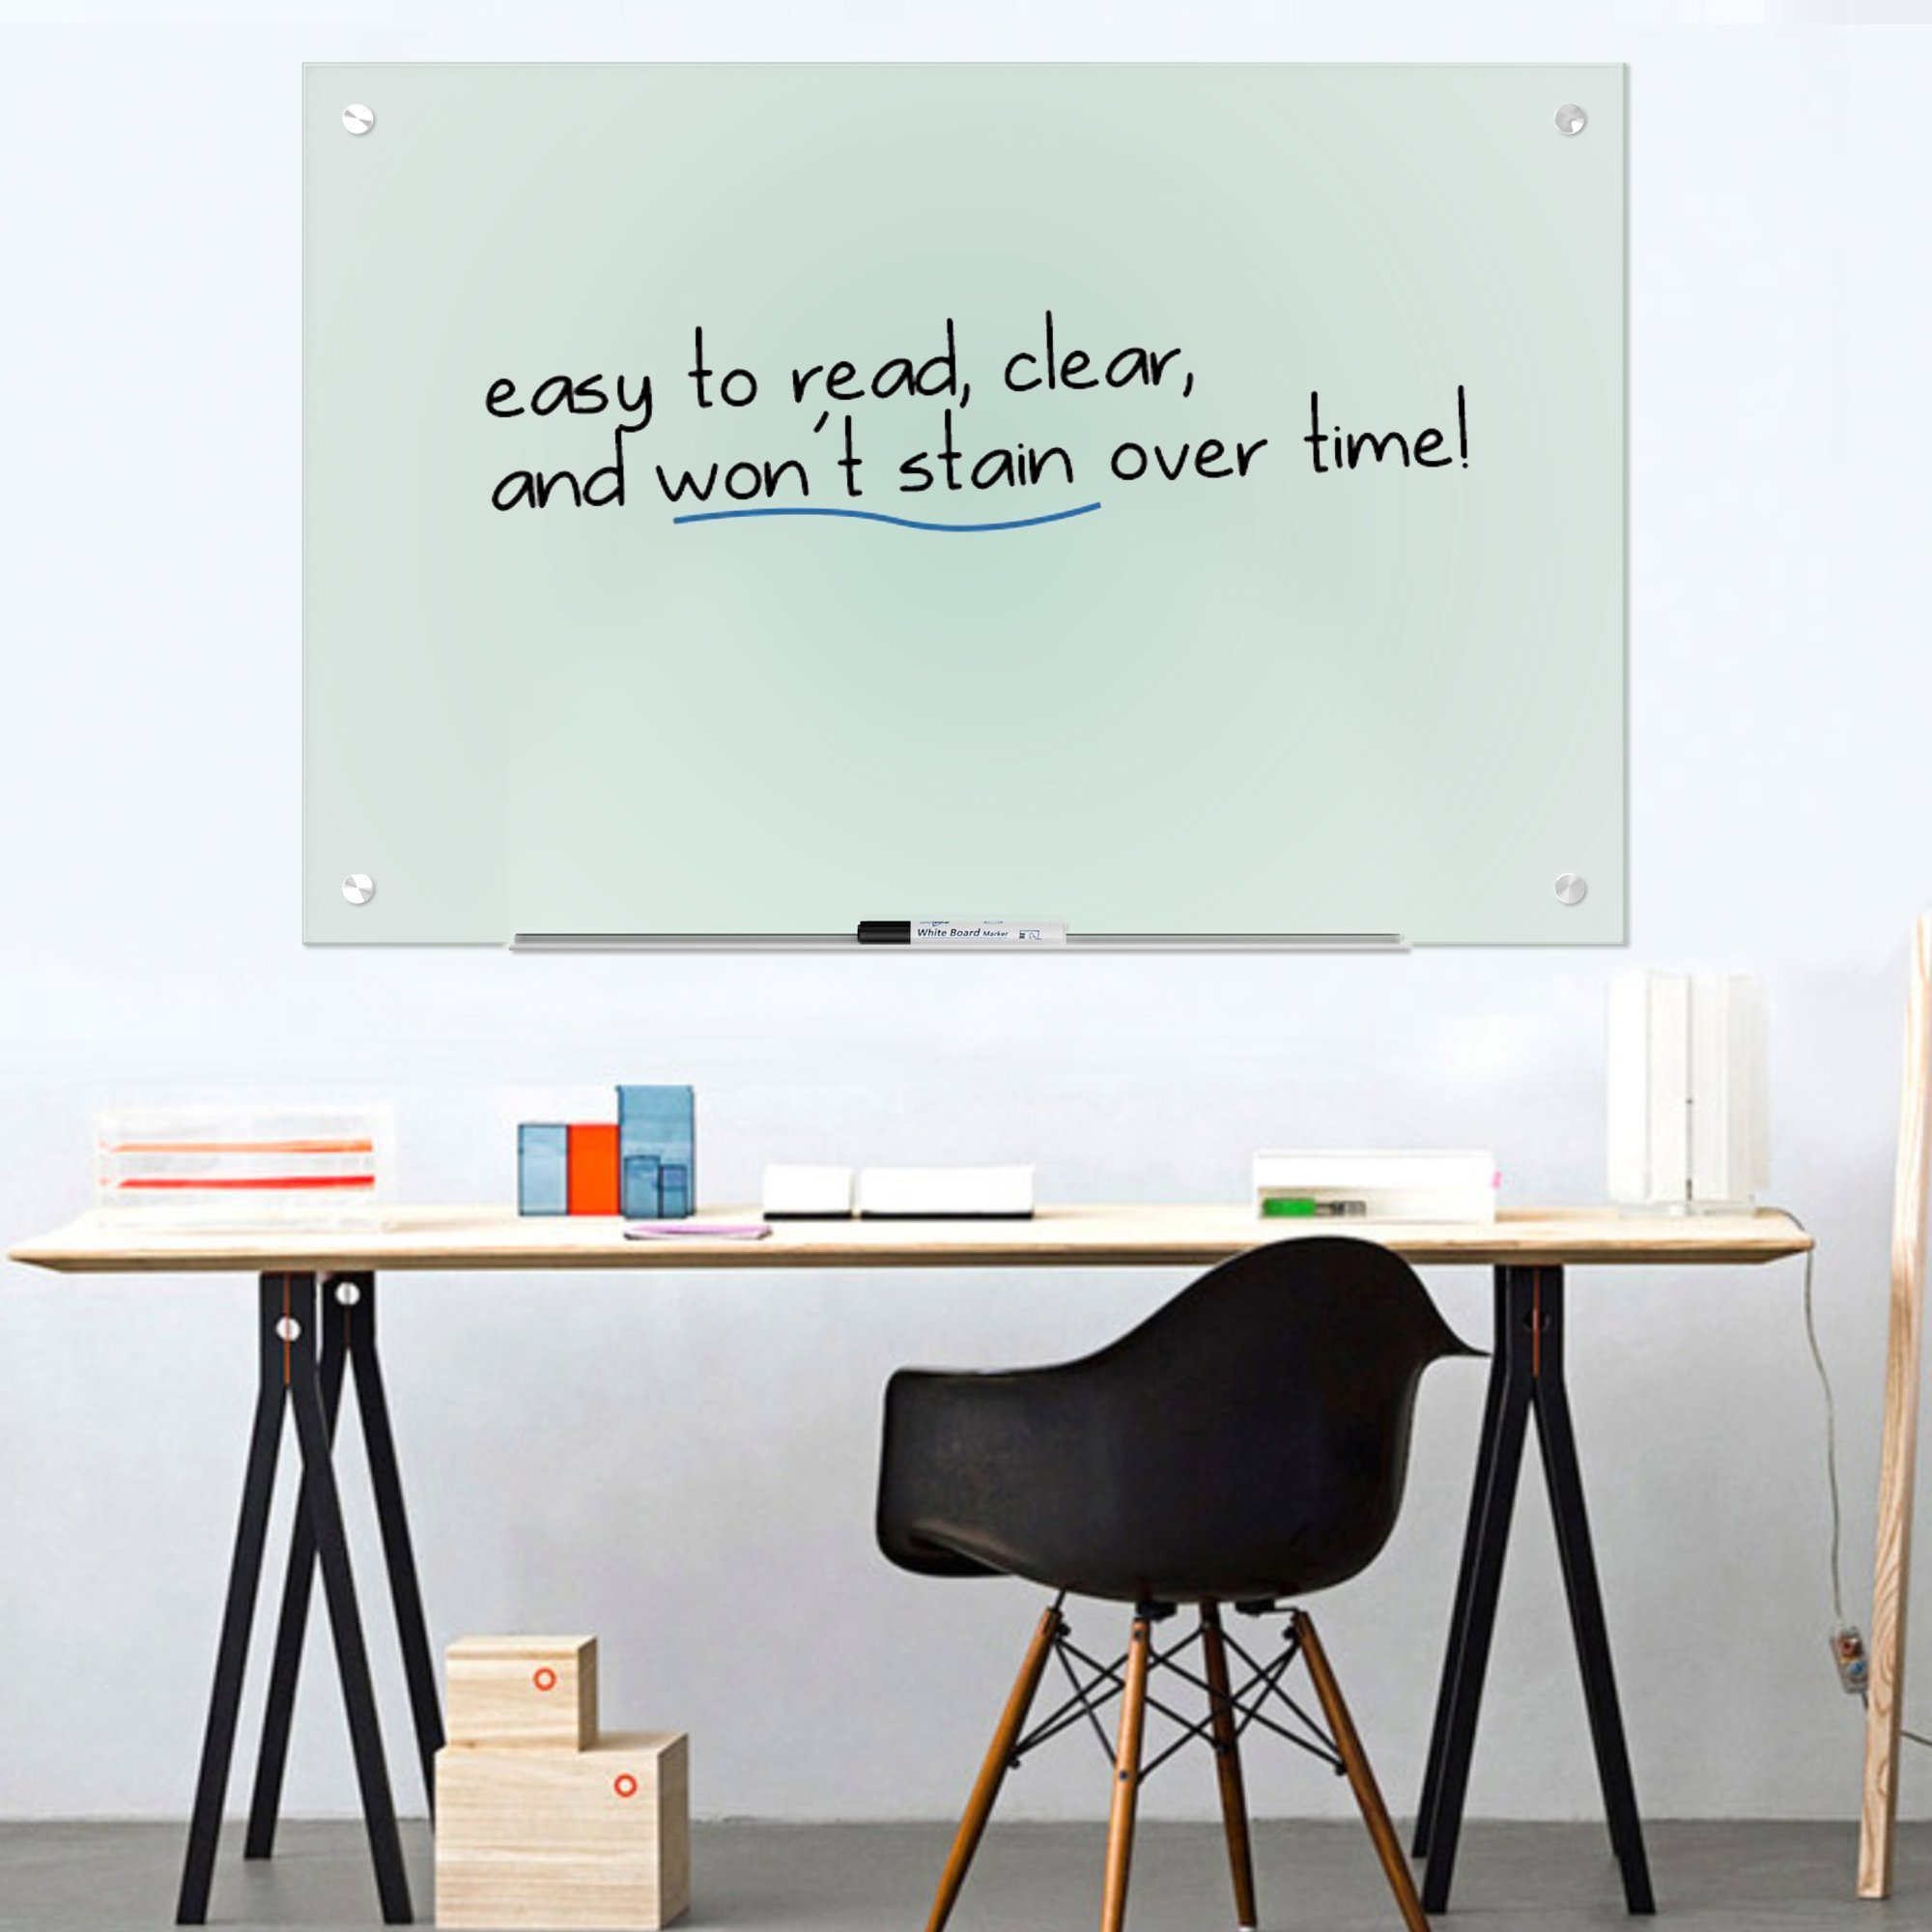 "Magnetic Glass Dry Erase Board Whiteboard 35 x 47"" Large Clear Frameless Infinity Frosted Surface Aluminum Tray Bonus Eraser 4 Markers 6 Magnets Home School Office Classroom Supplies (35 x 47 inch) by Dapper Display (Image #2)"